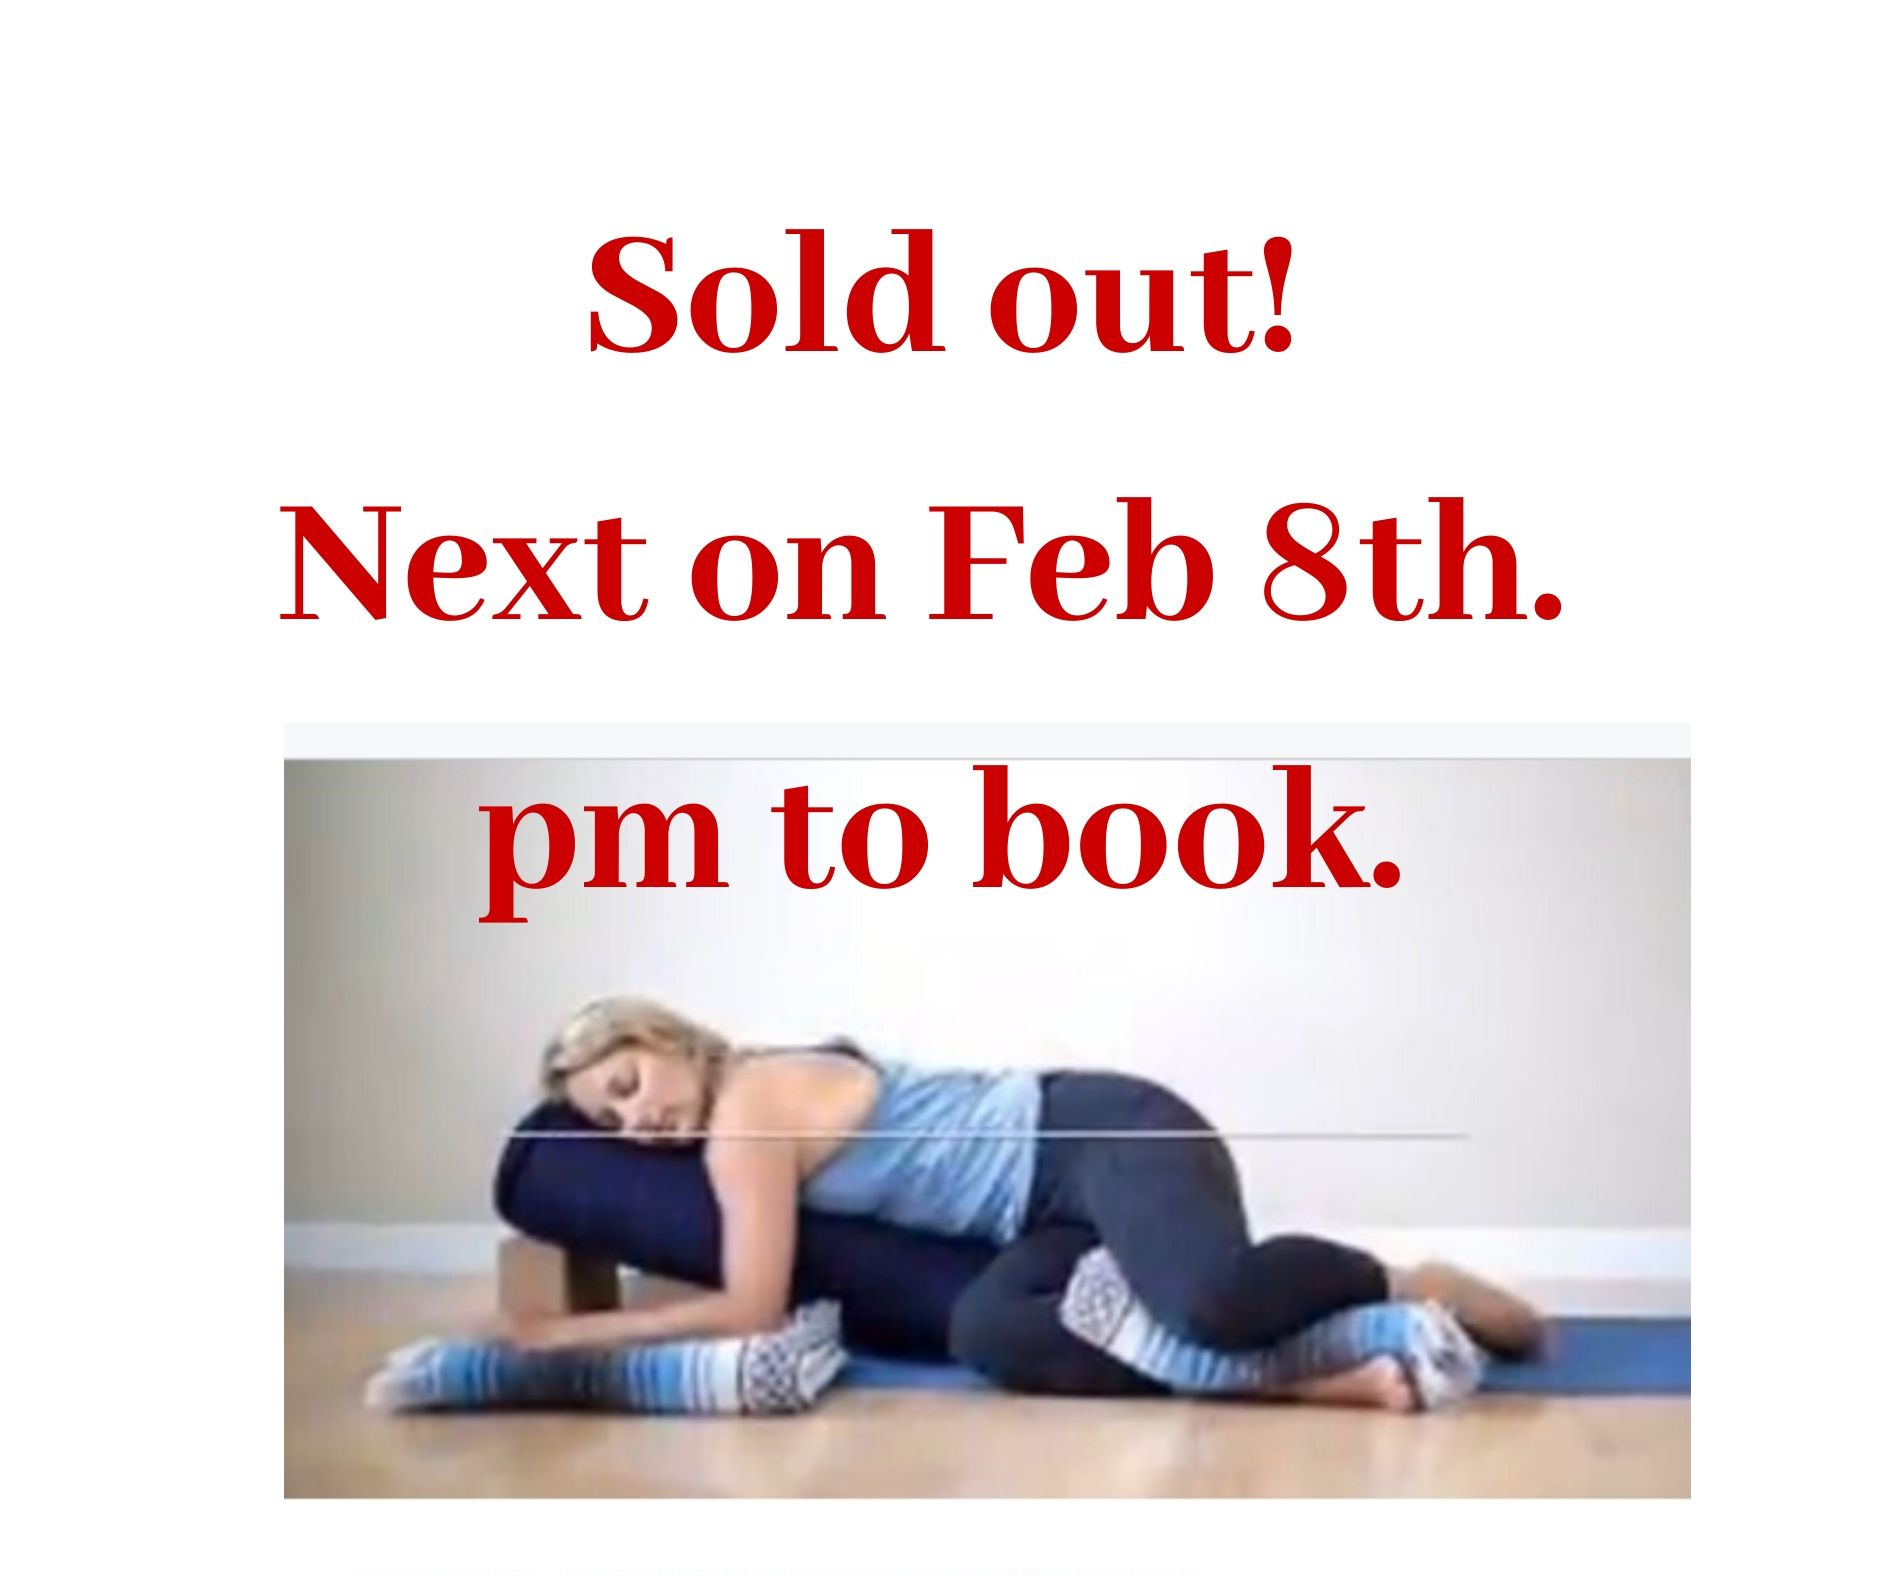 Jan 12th Y'in Safe Hands SOLD OUT!